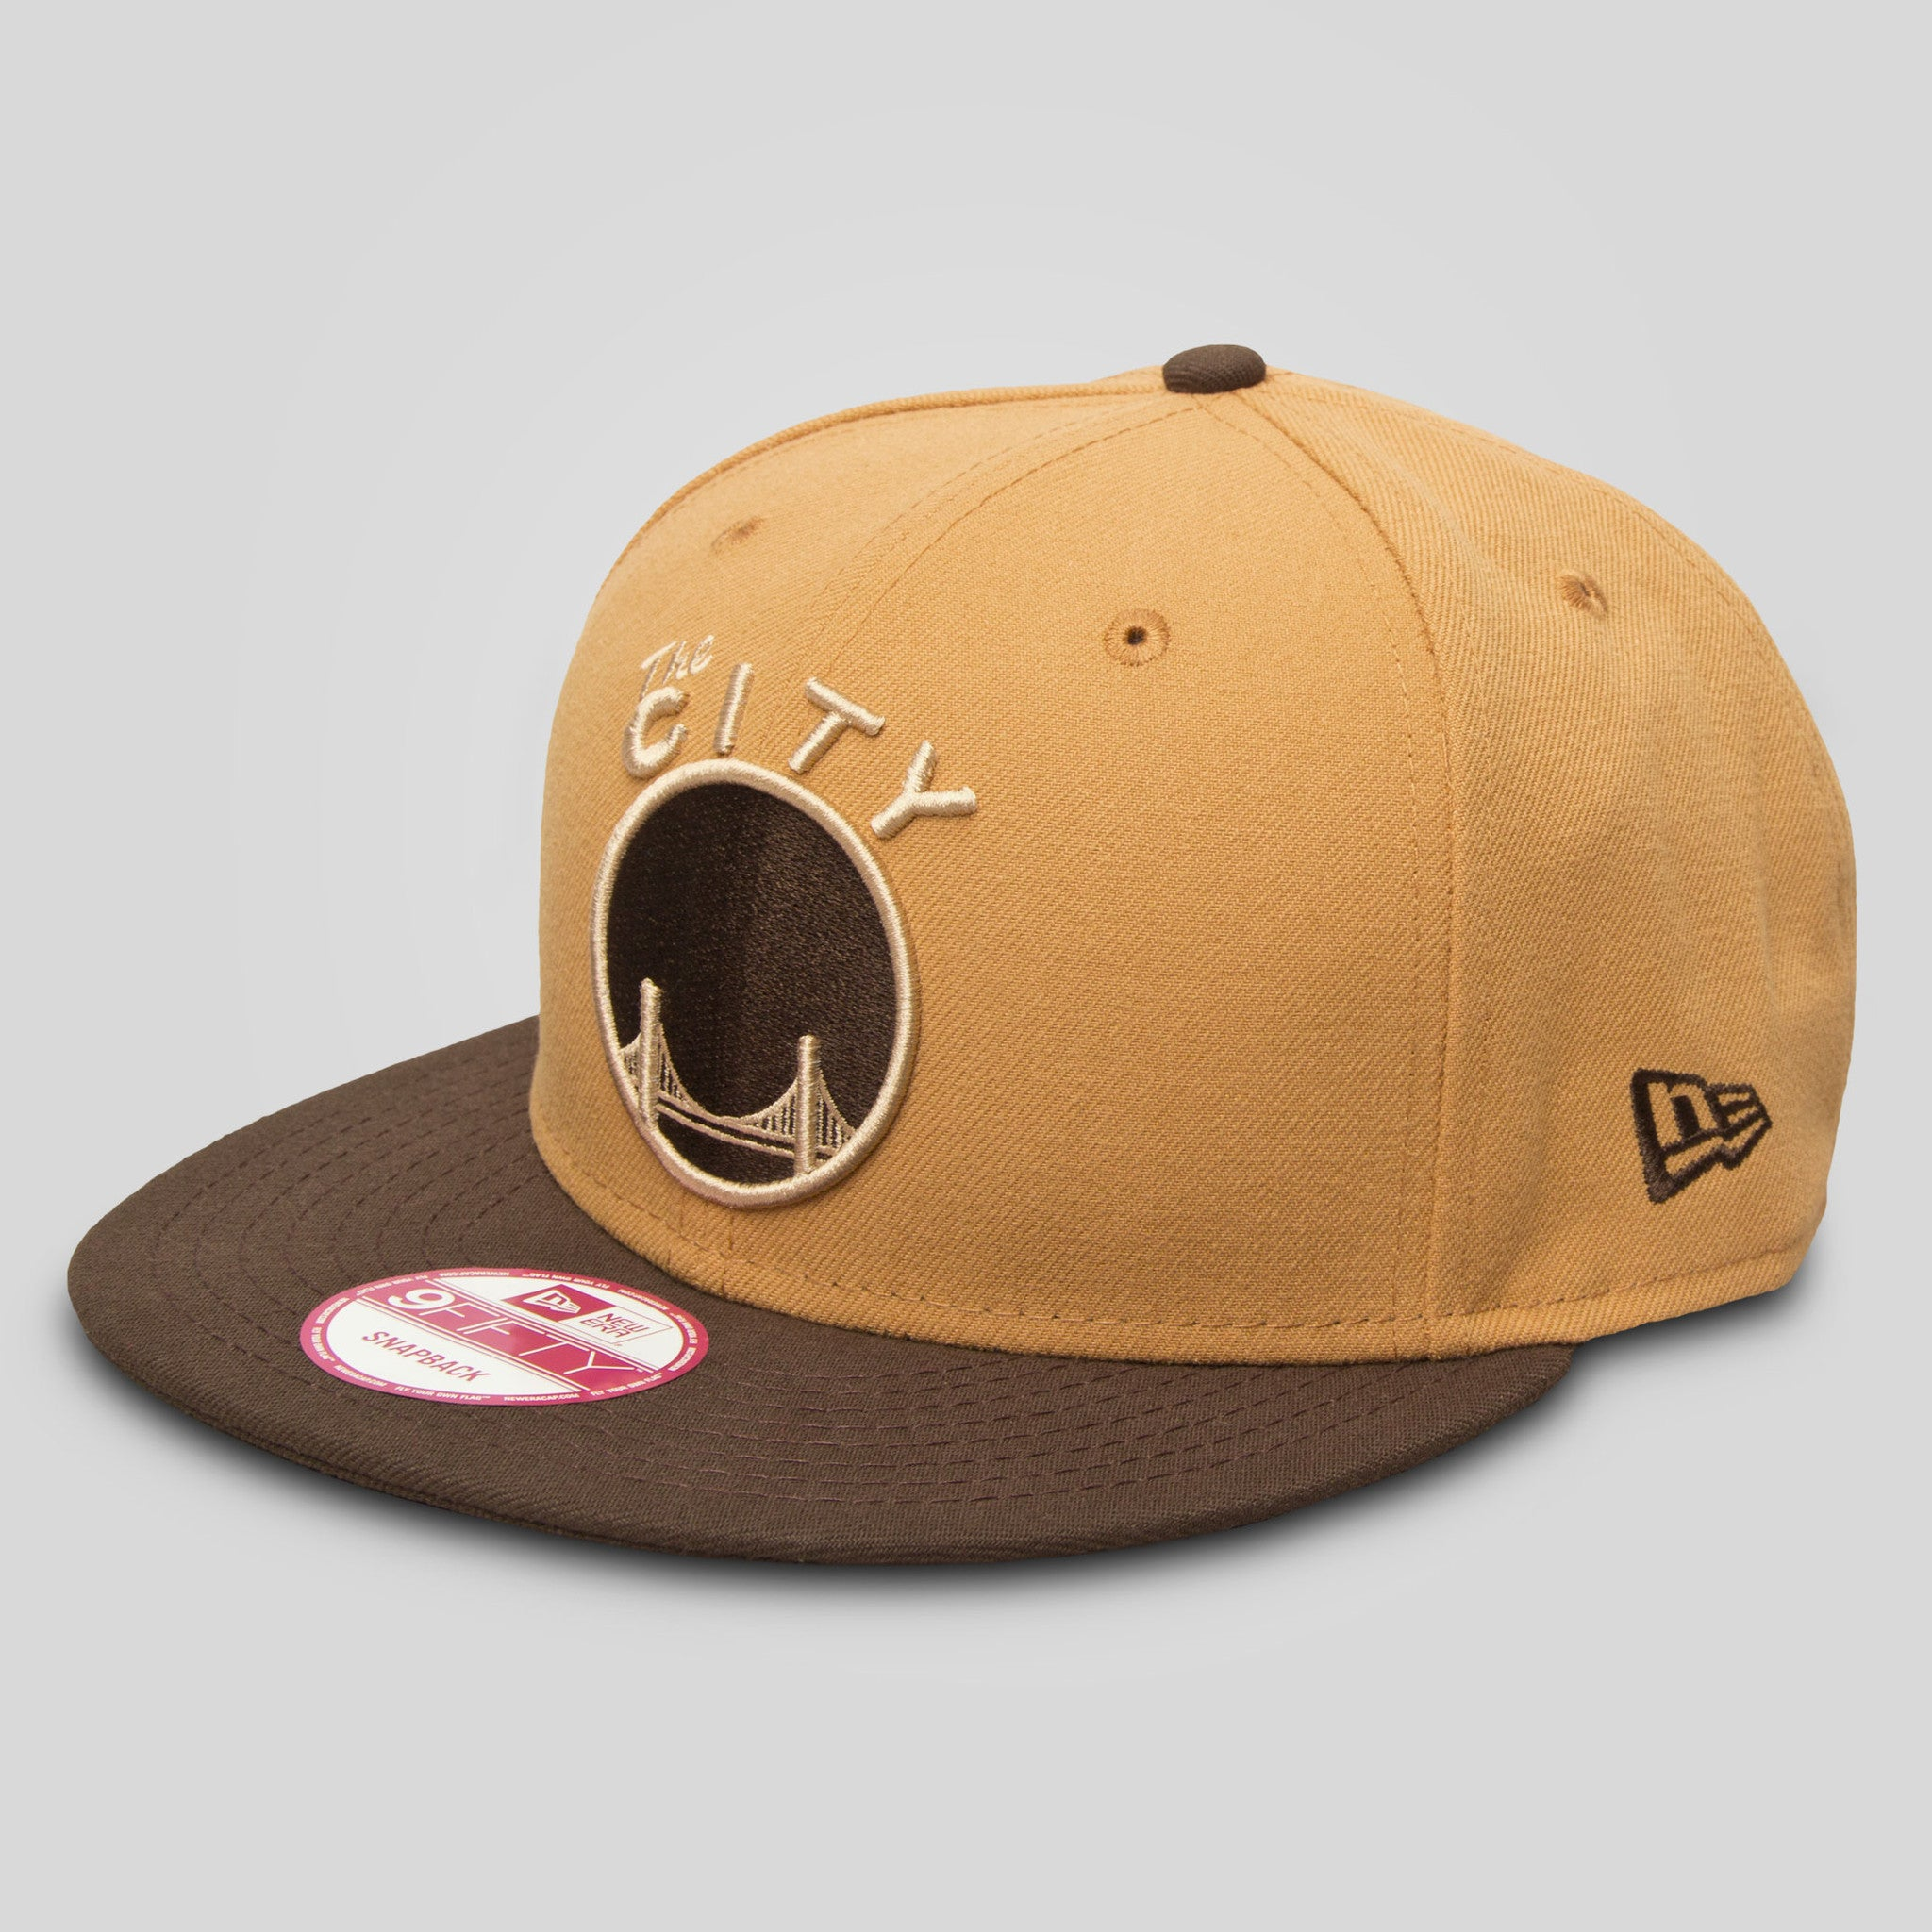 965a4a219e731 Upper Playground - Lux - THE CITY New Era Snapback in Tan Brown